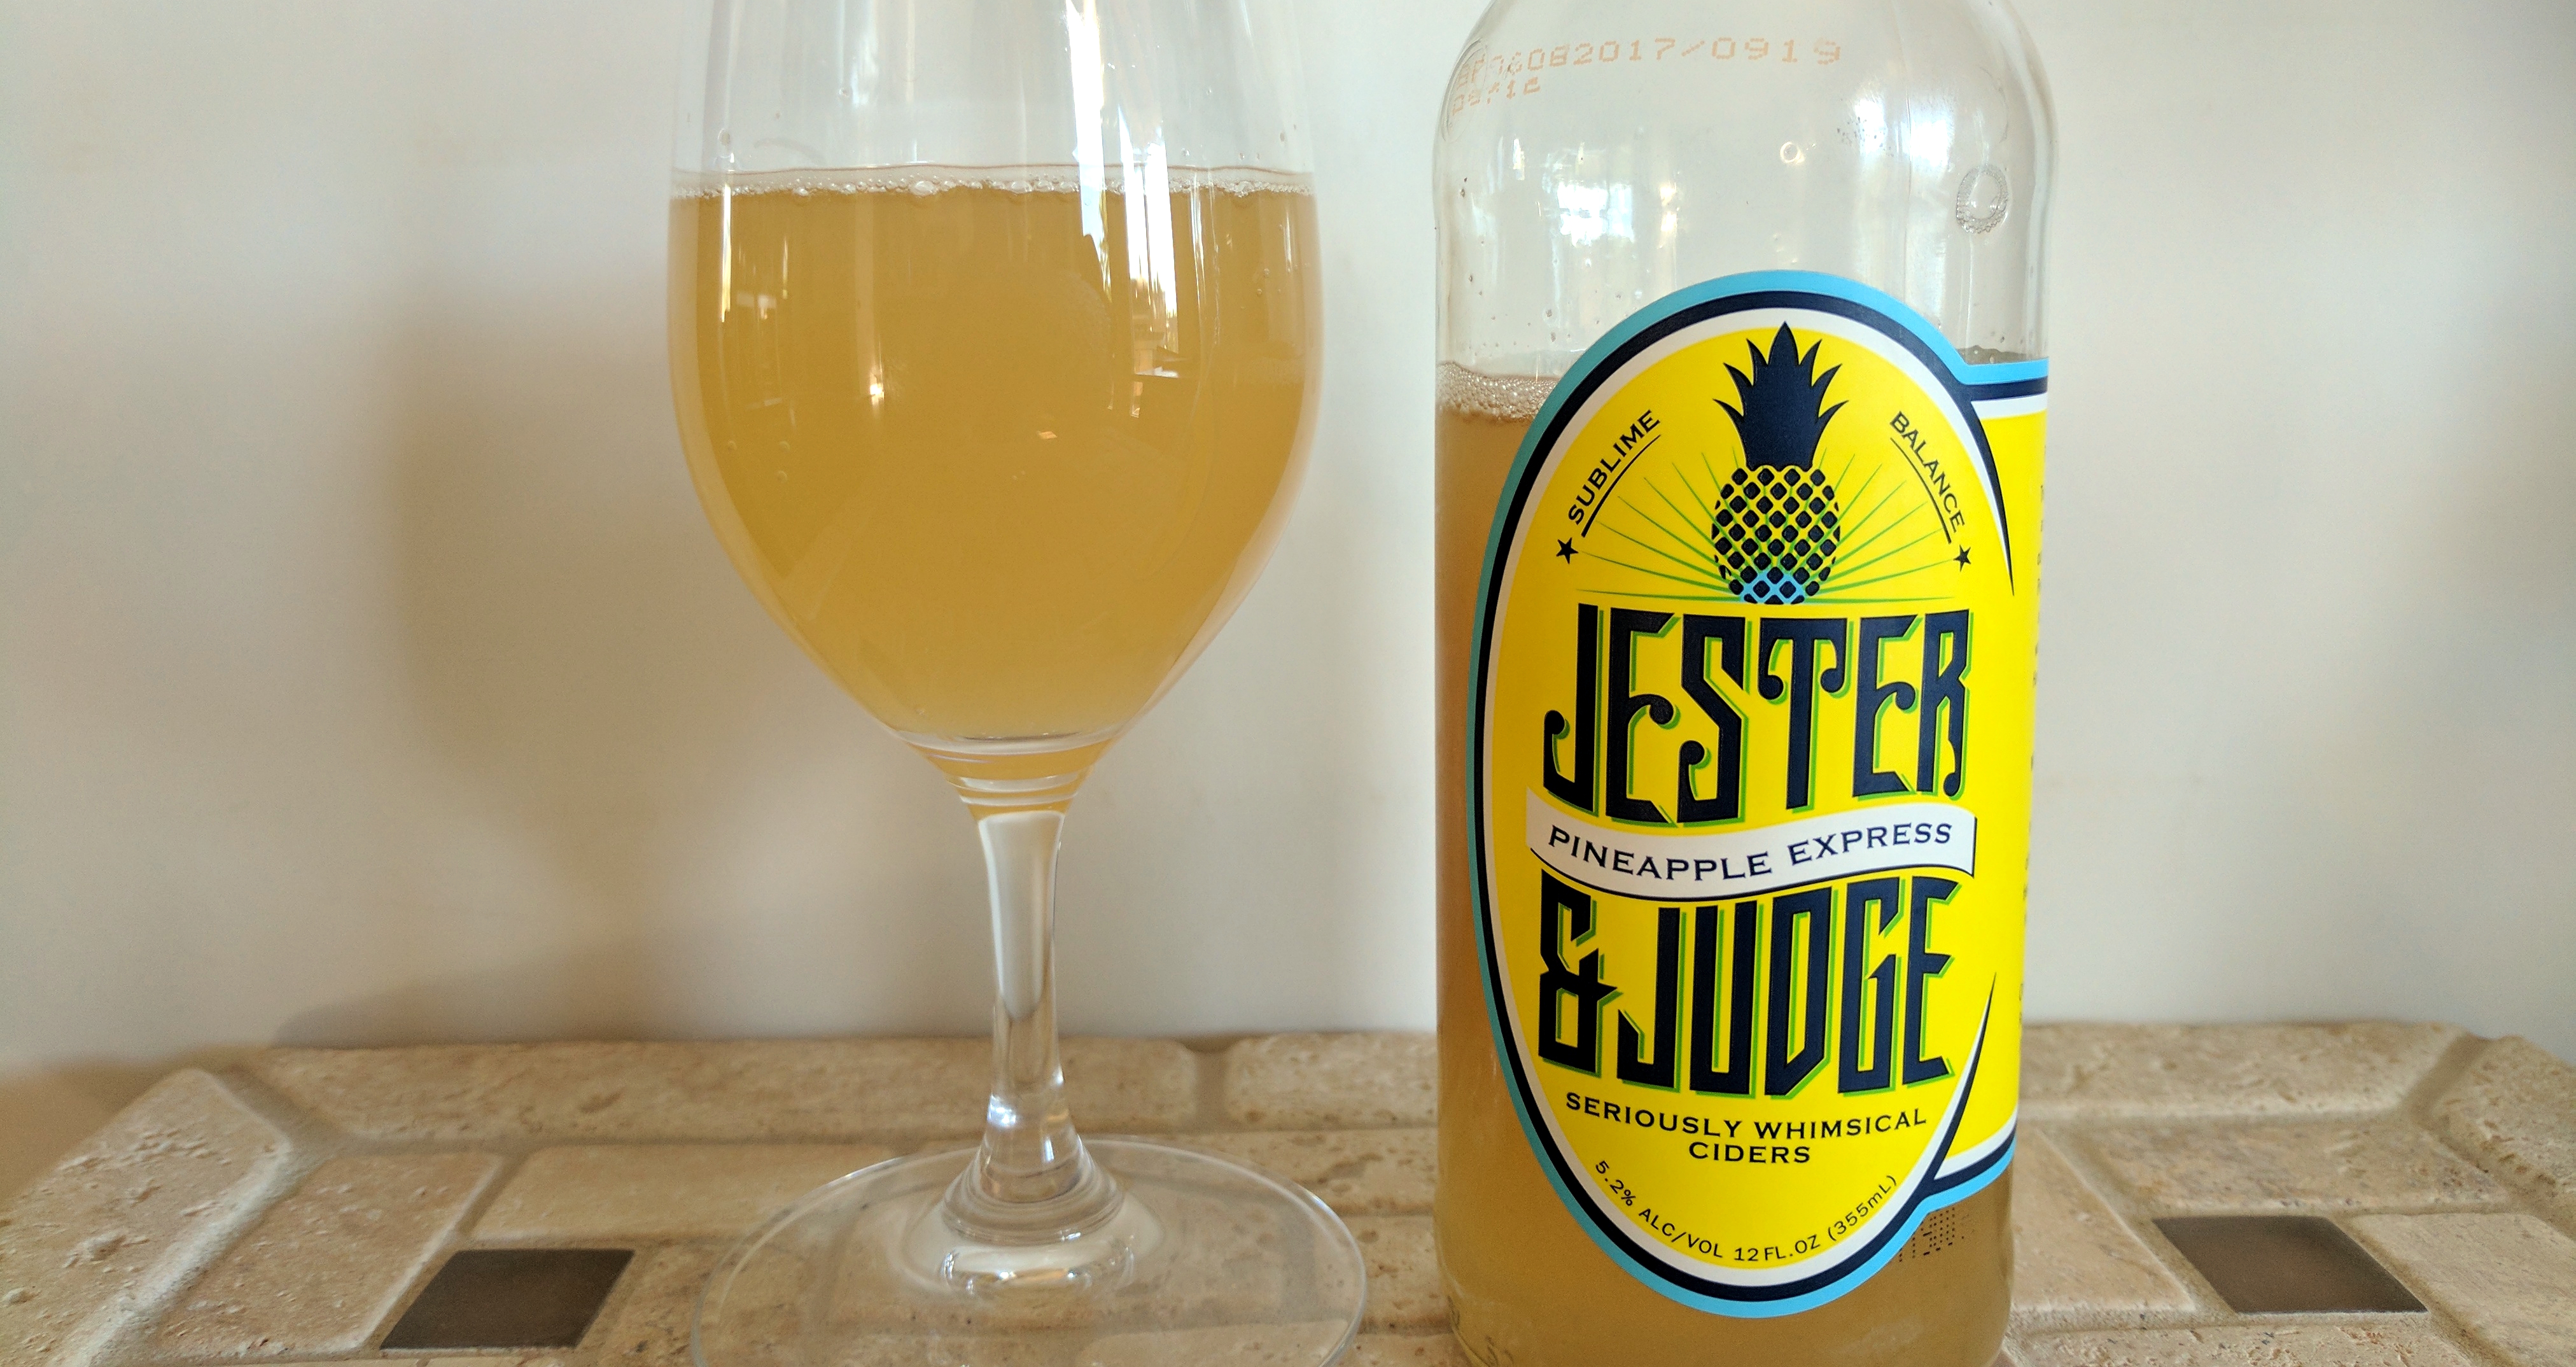 Jester and Judge Pineapple Express Cider